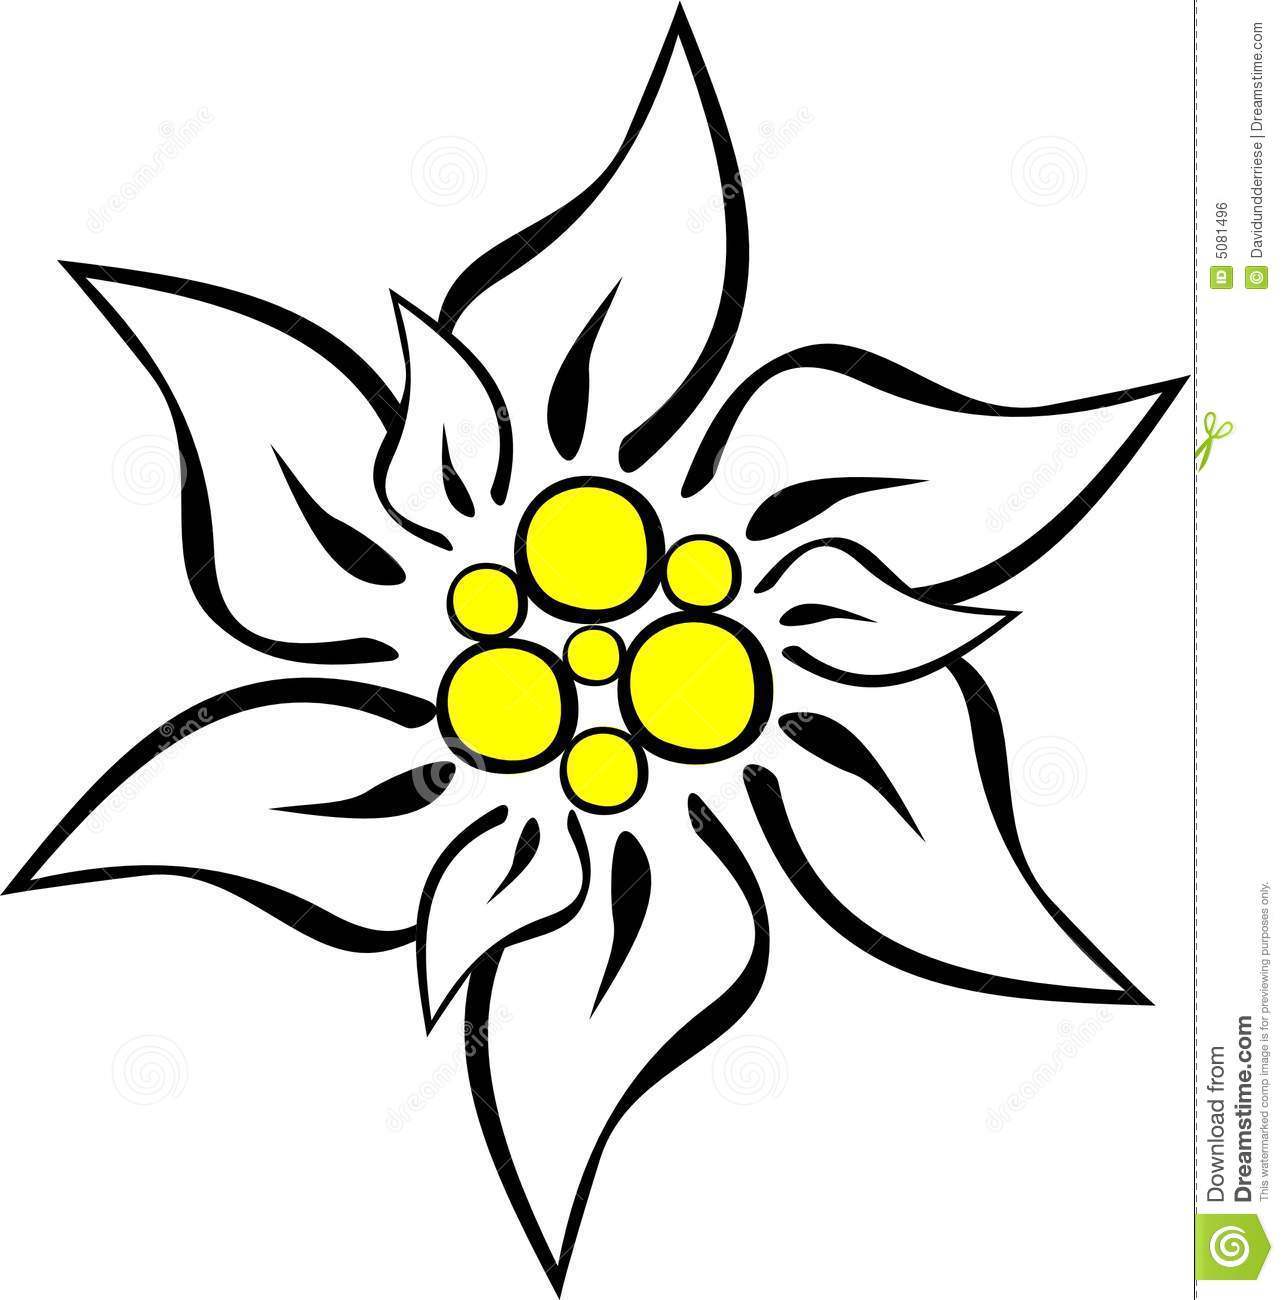 Royalty Free Stock Image Edelweiss Image5081496 on thumbs up clip art